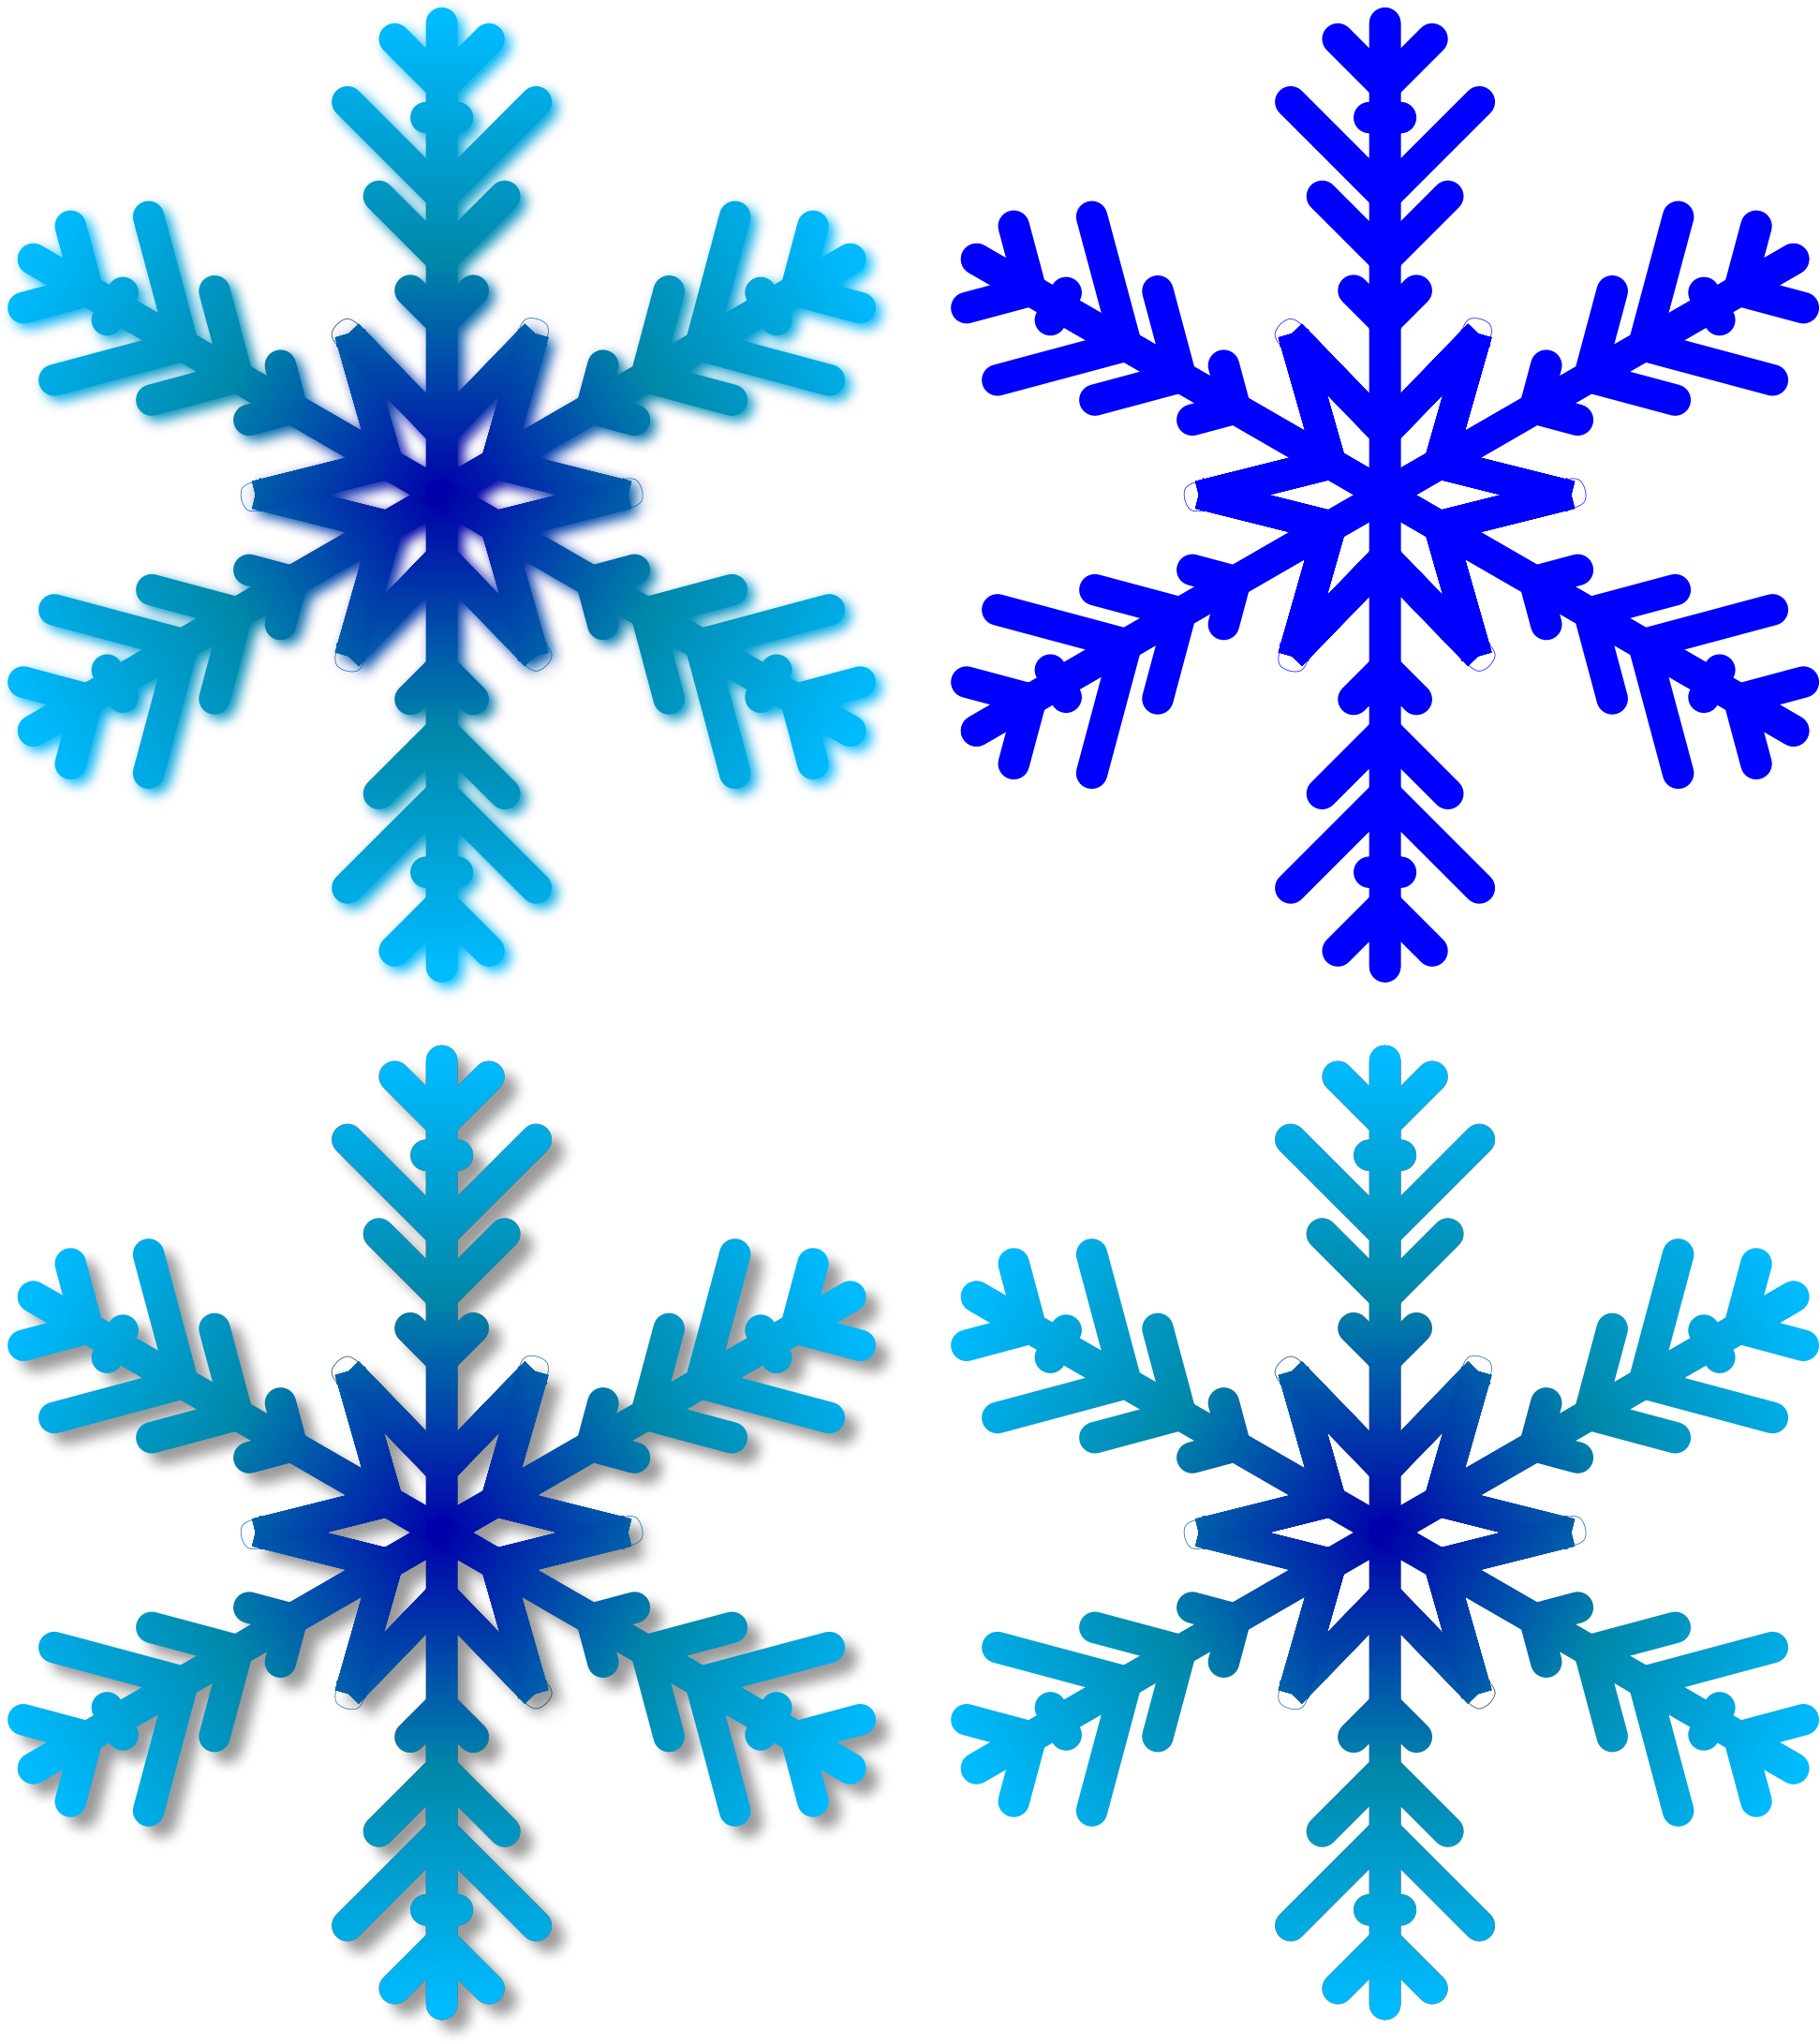 Four Snowflakes by Manuela.